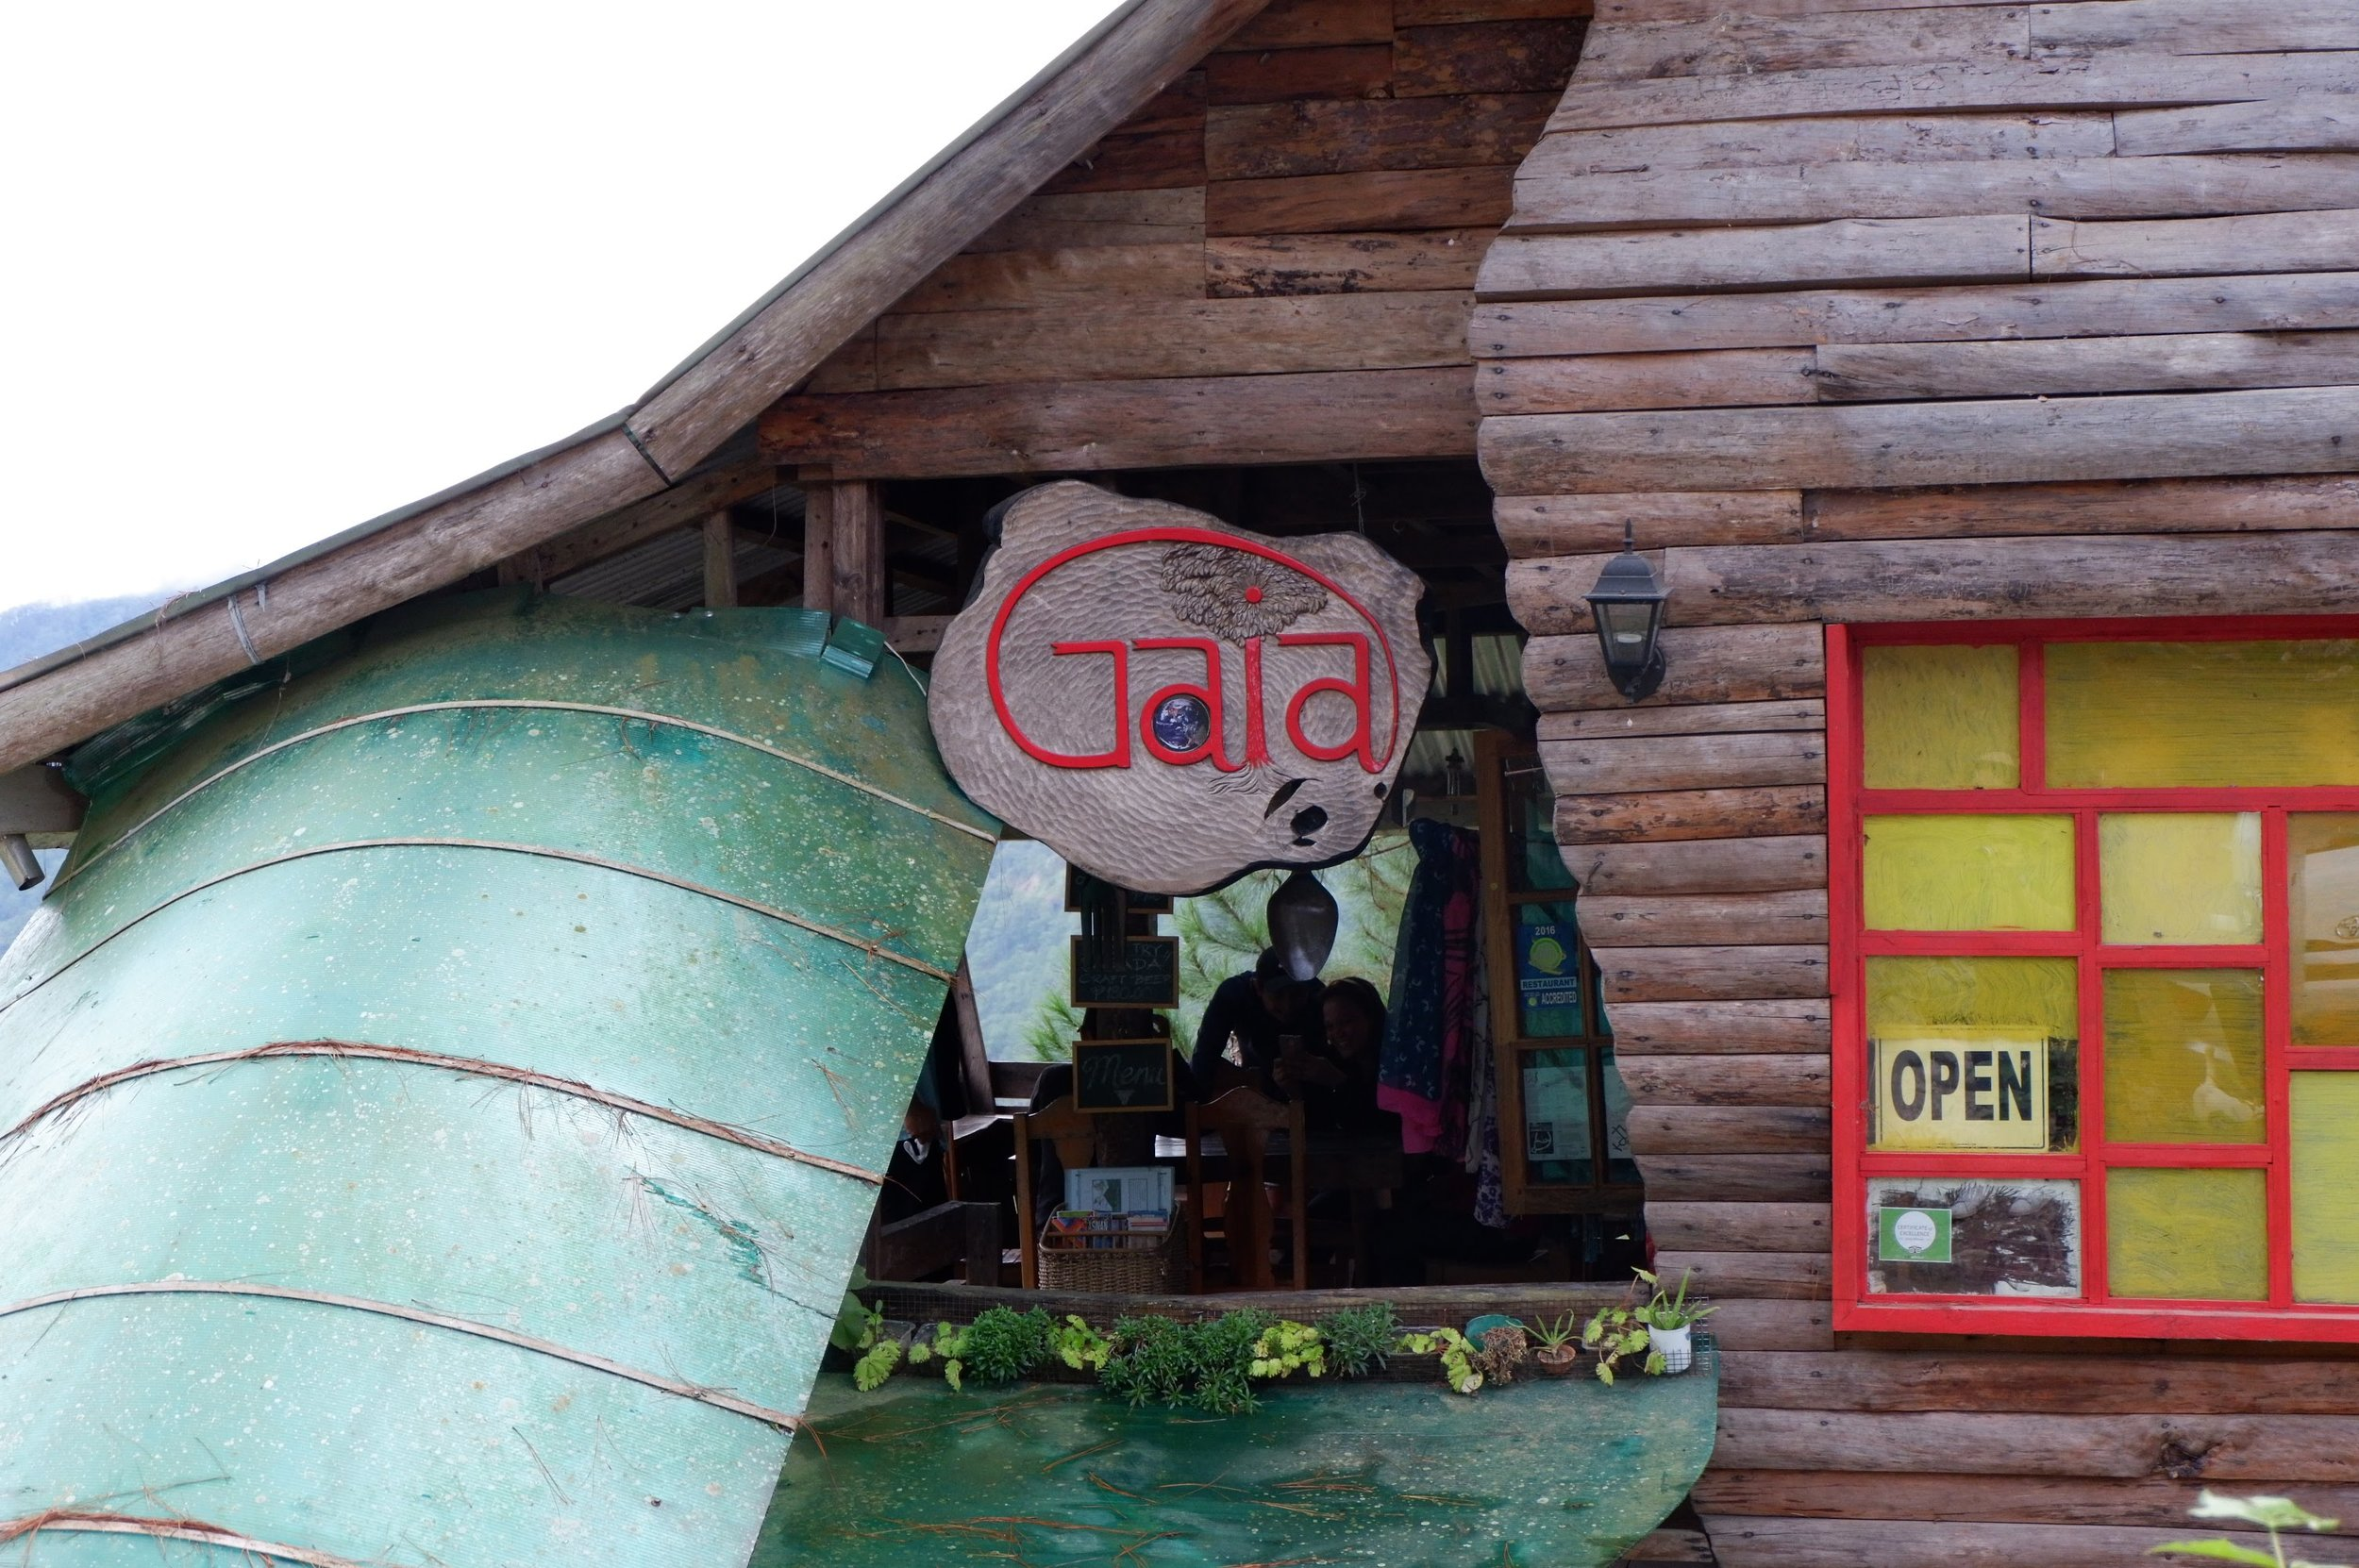 """GAIA CAFE - A community-based Kankanaey cafe by Gawani in Ambasing, Sagada. Its tree-house-inspired cafe made from repurposed wood is located on a cliff with a 270-degree view of the valley on the way to Sumaguing Cave.The name means """"Mother Earth"""" in Greek, and they serve organic, community-sourced ingredients from around Sagada.The menu is mostly vegetarian, but not limited to it."""